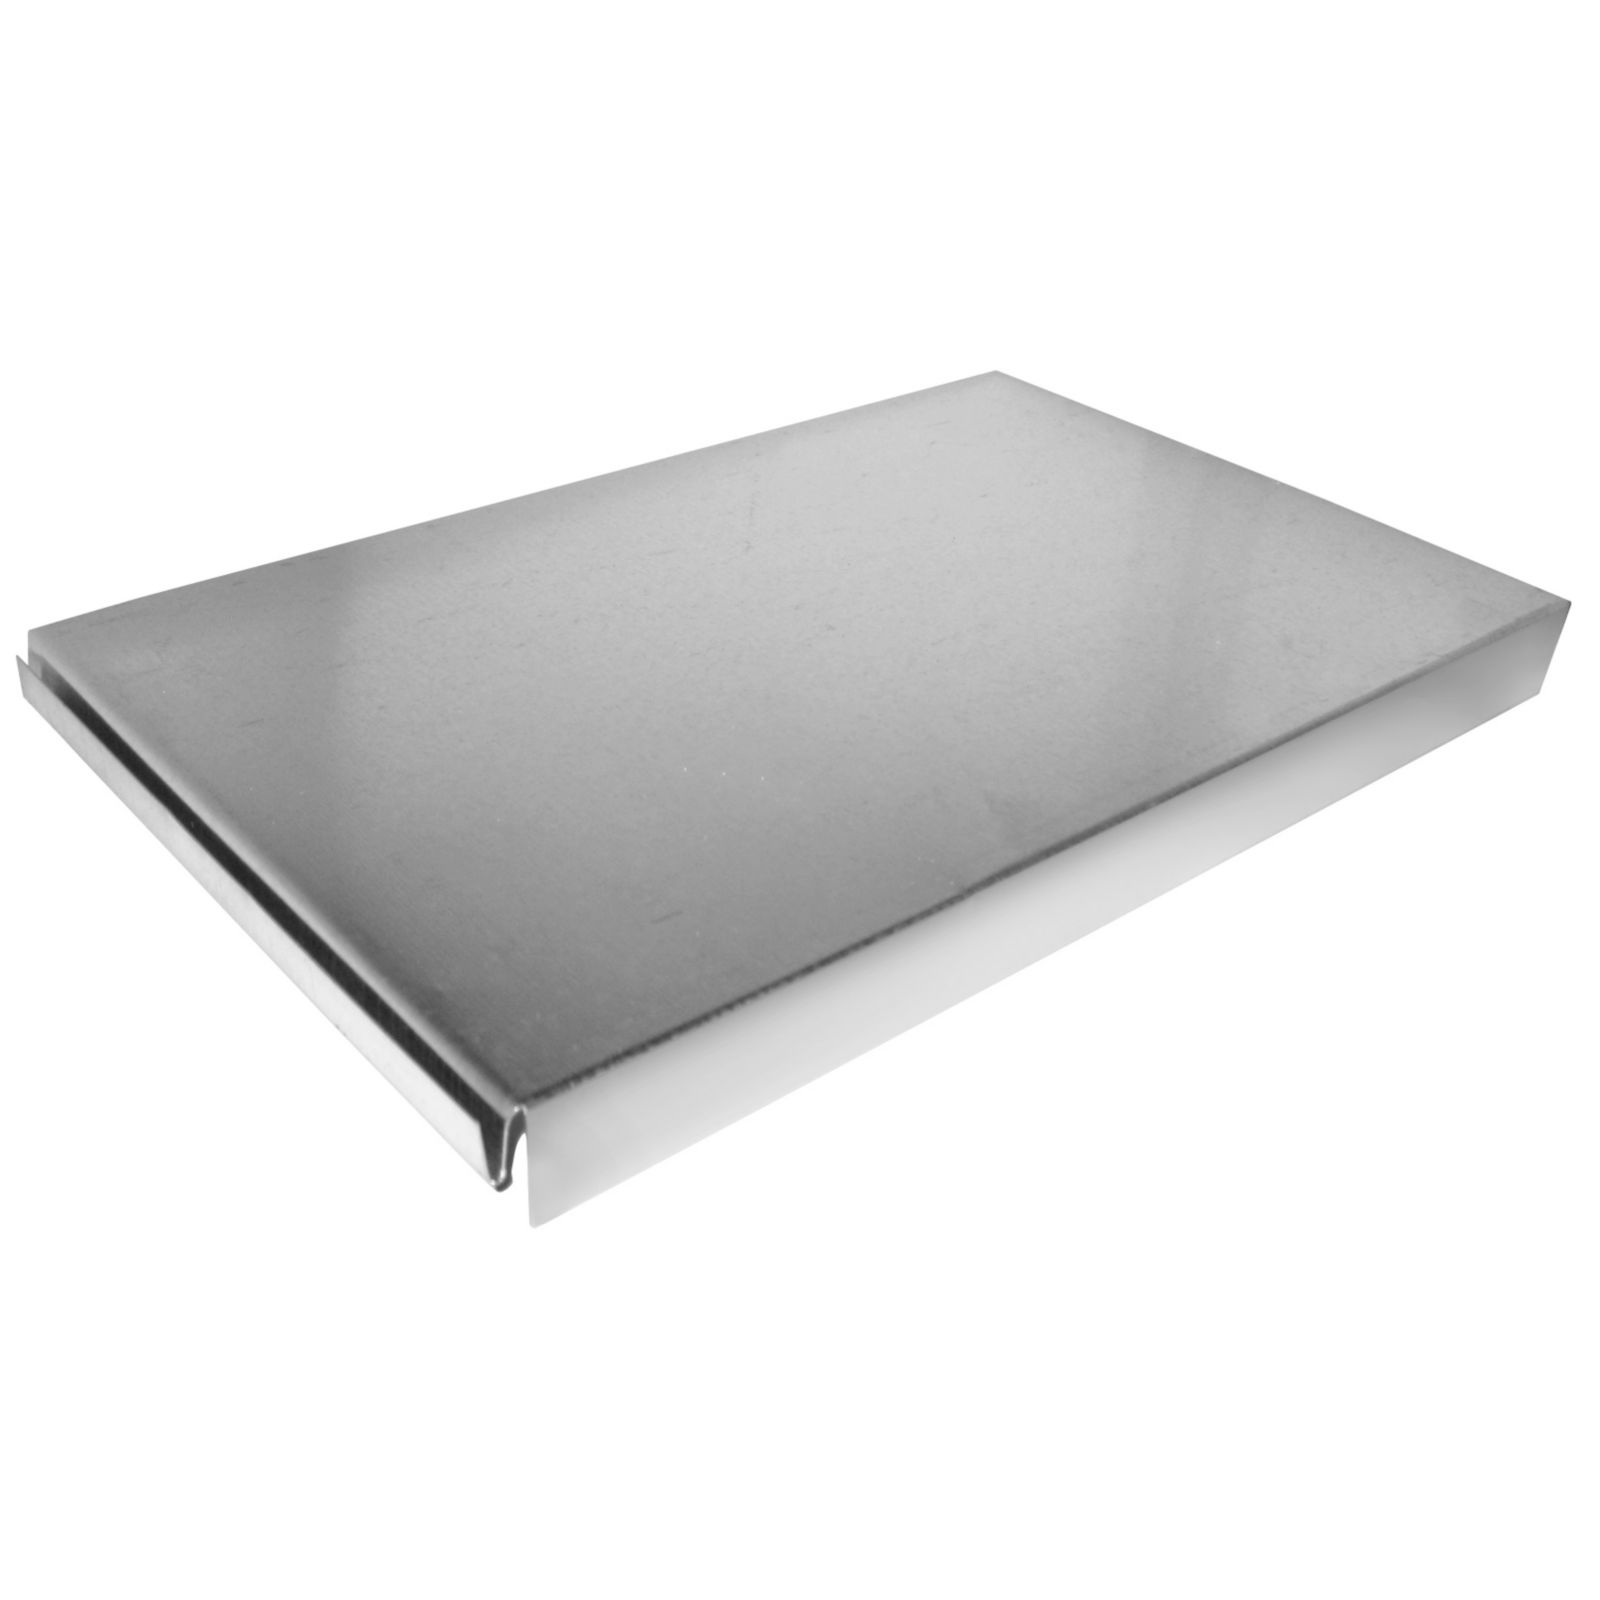 "Southwark 212012 - 20"" X 12"" Trunk Duct End Cap, Hot Dipped Galvanized Steel Per ASTM A653 CS Type B"